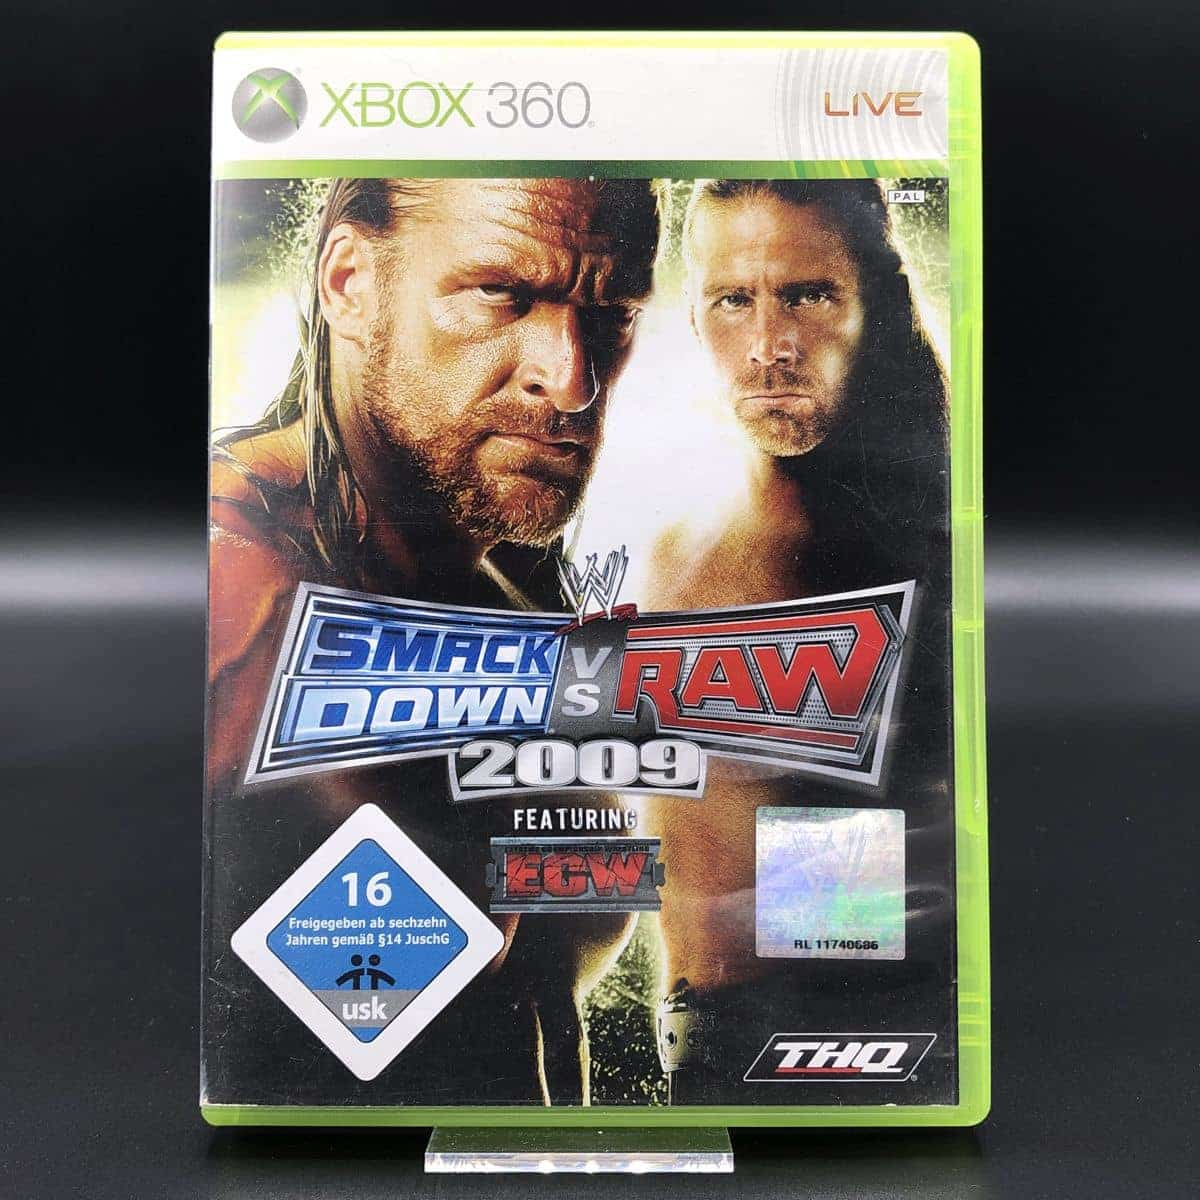 WWE SmackDown vs. Raw 2009 (ohne Anleitung) (Gut) XBOX 360